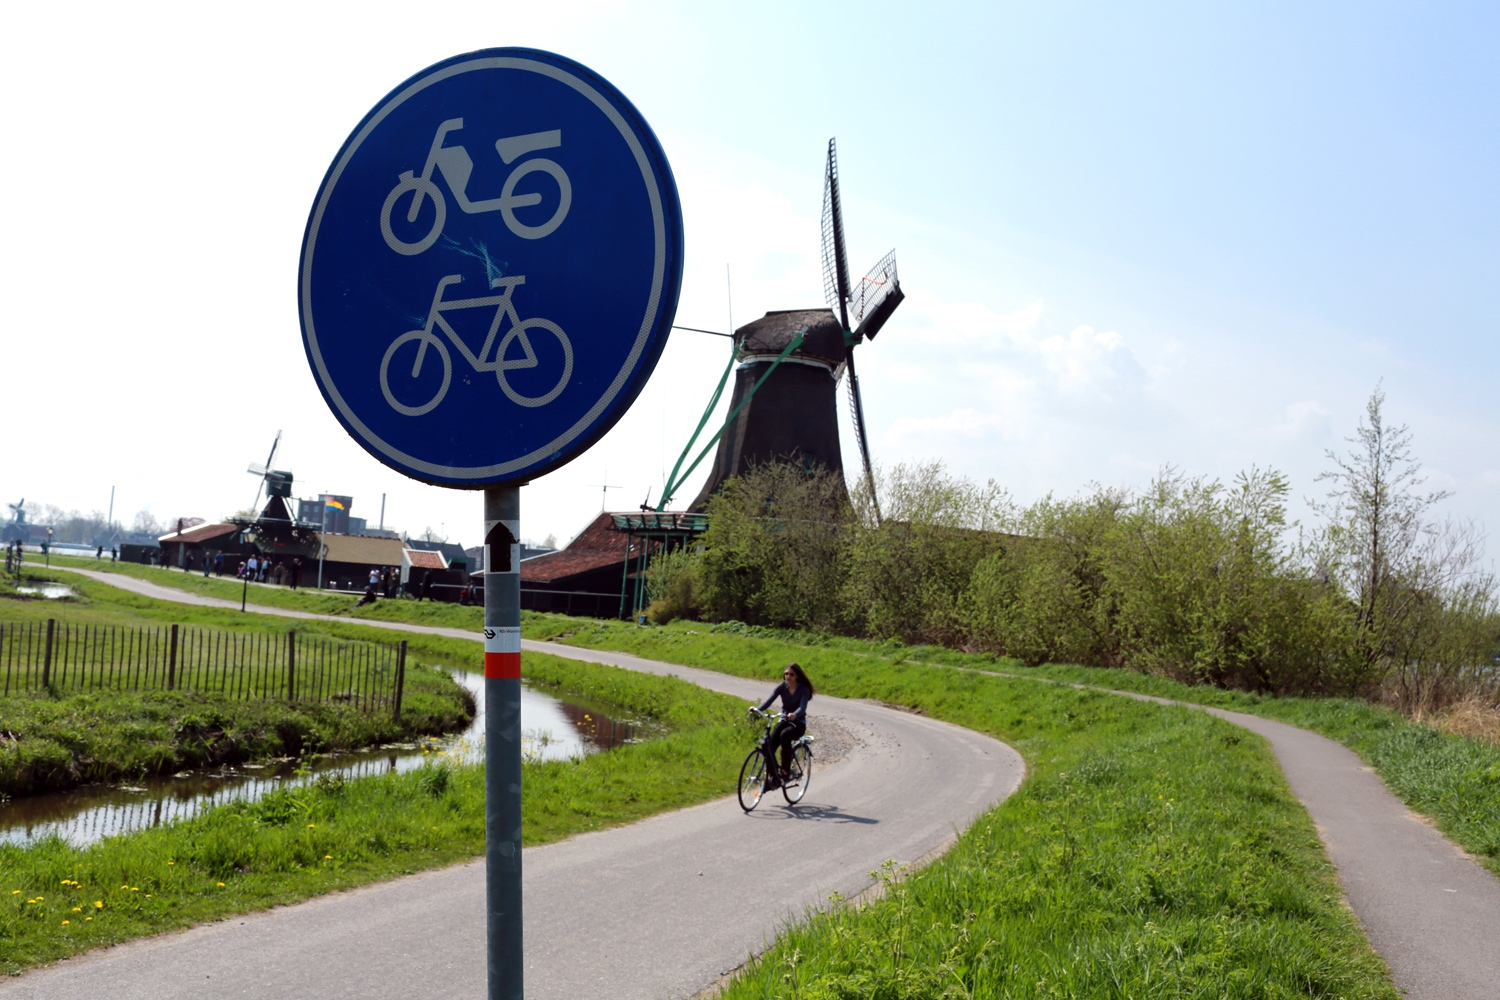 Cycling is a common and popular method of transport and recreation, accounting for 27% all trips nationwide, and up to 59% of all trips in its cities. Tourists also like to cycle around the countryside or the city.